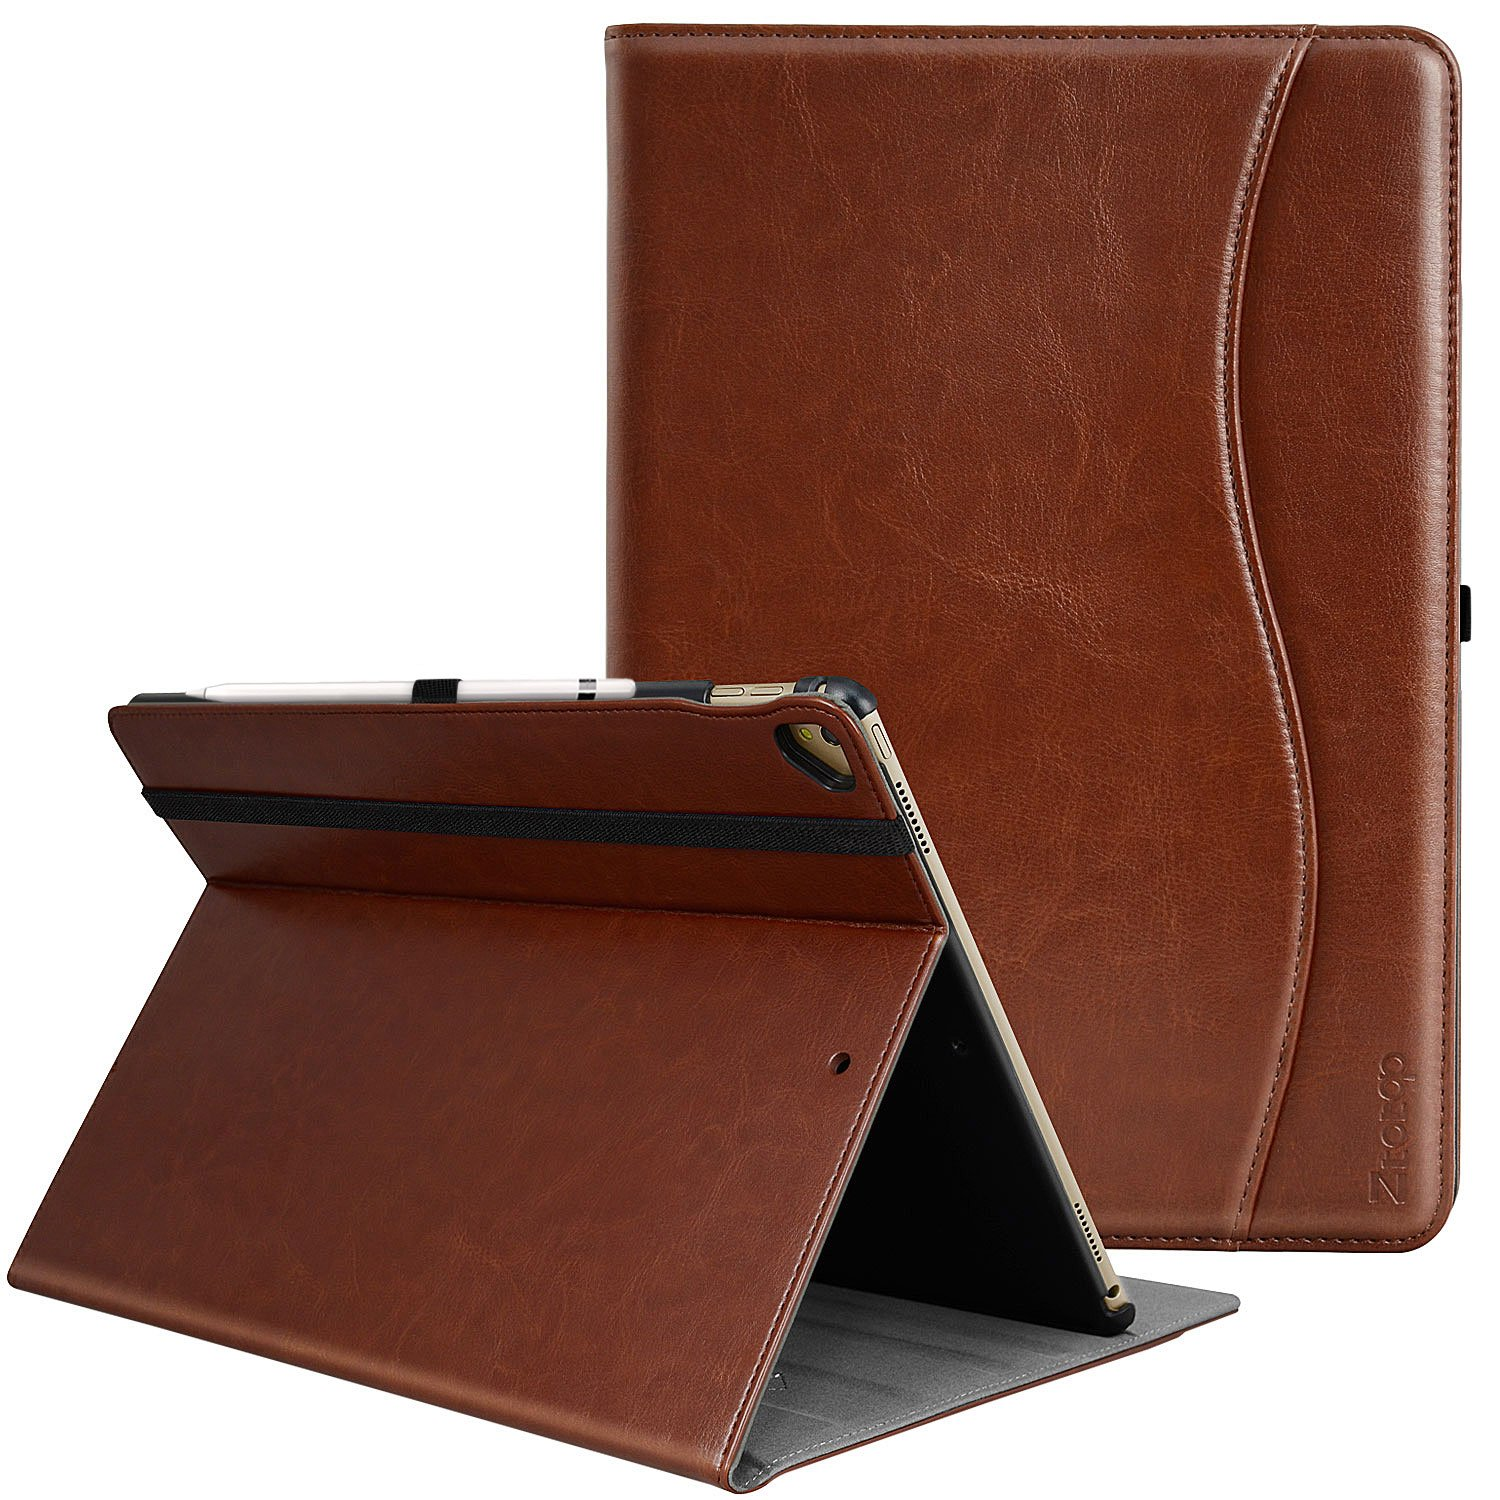 IPad Pro 12.9 Inch 2017/2015 Case, Ztotop Premium Leather Business Slim Folding Stand Folio Cover for New Apple Tablet with Auto Wake/Sleep and Document Card Slots, Multiple Viewing Angles,Brown